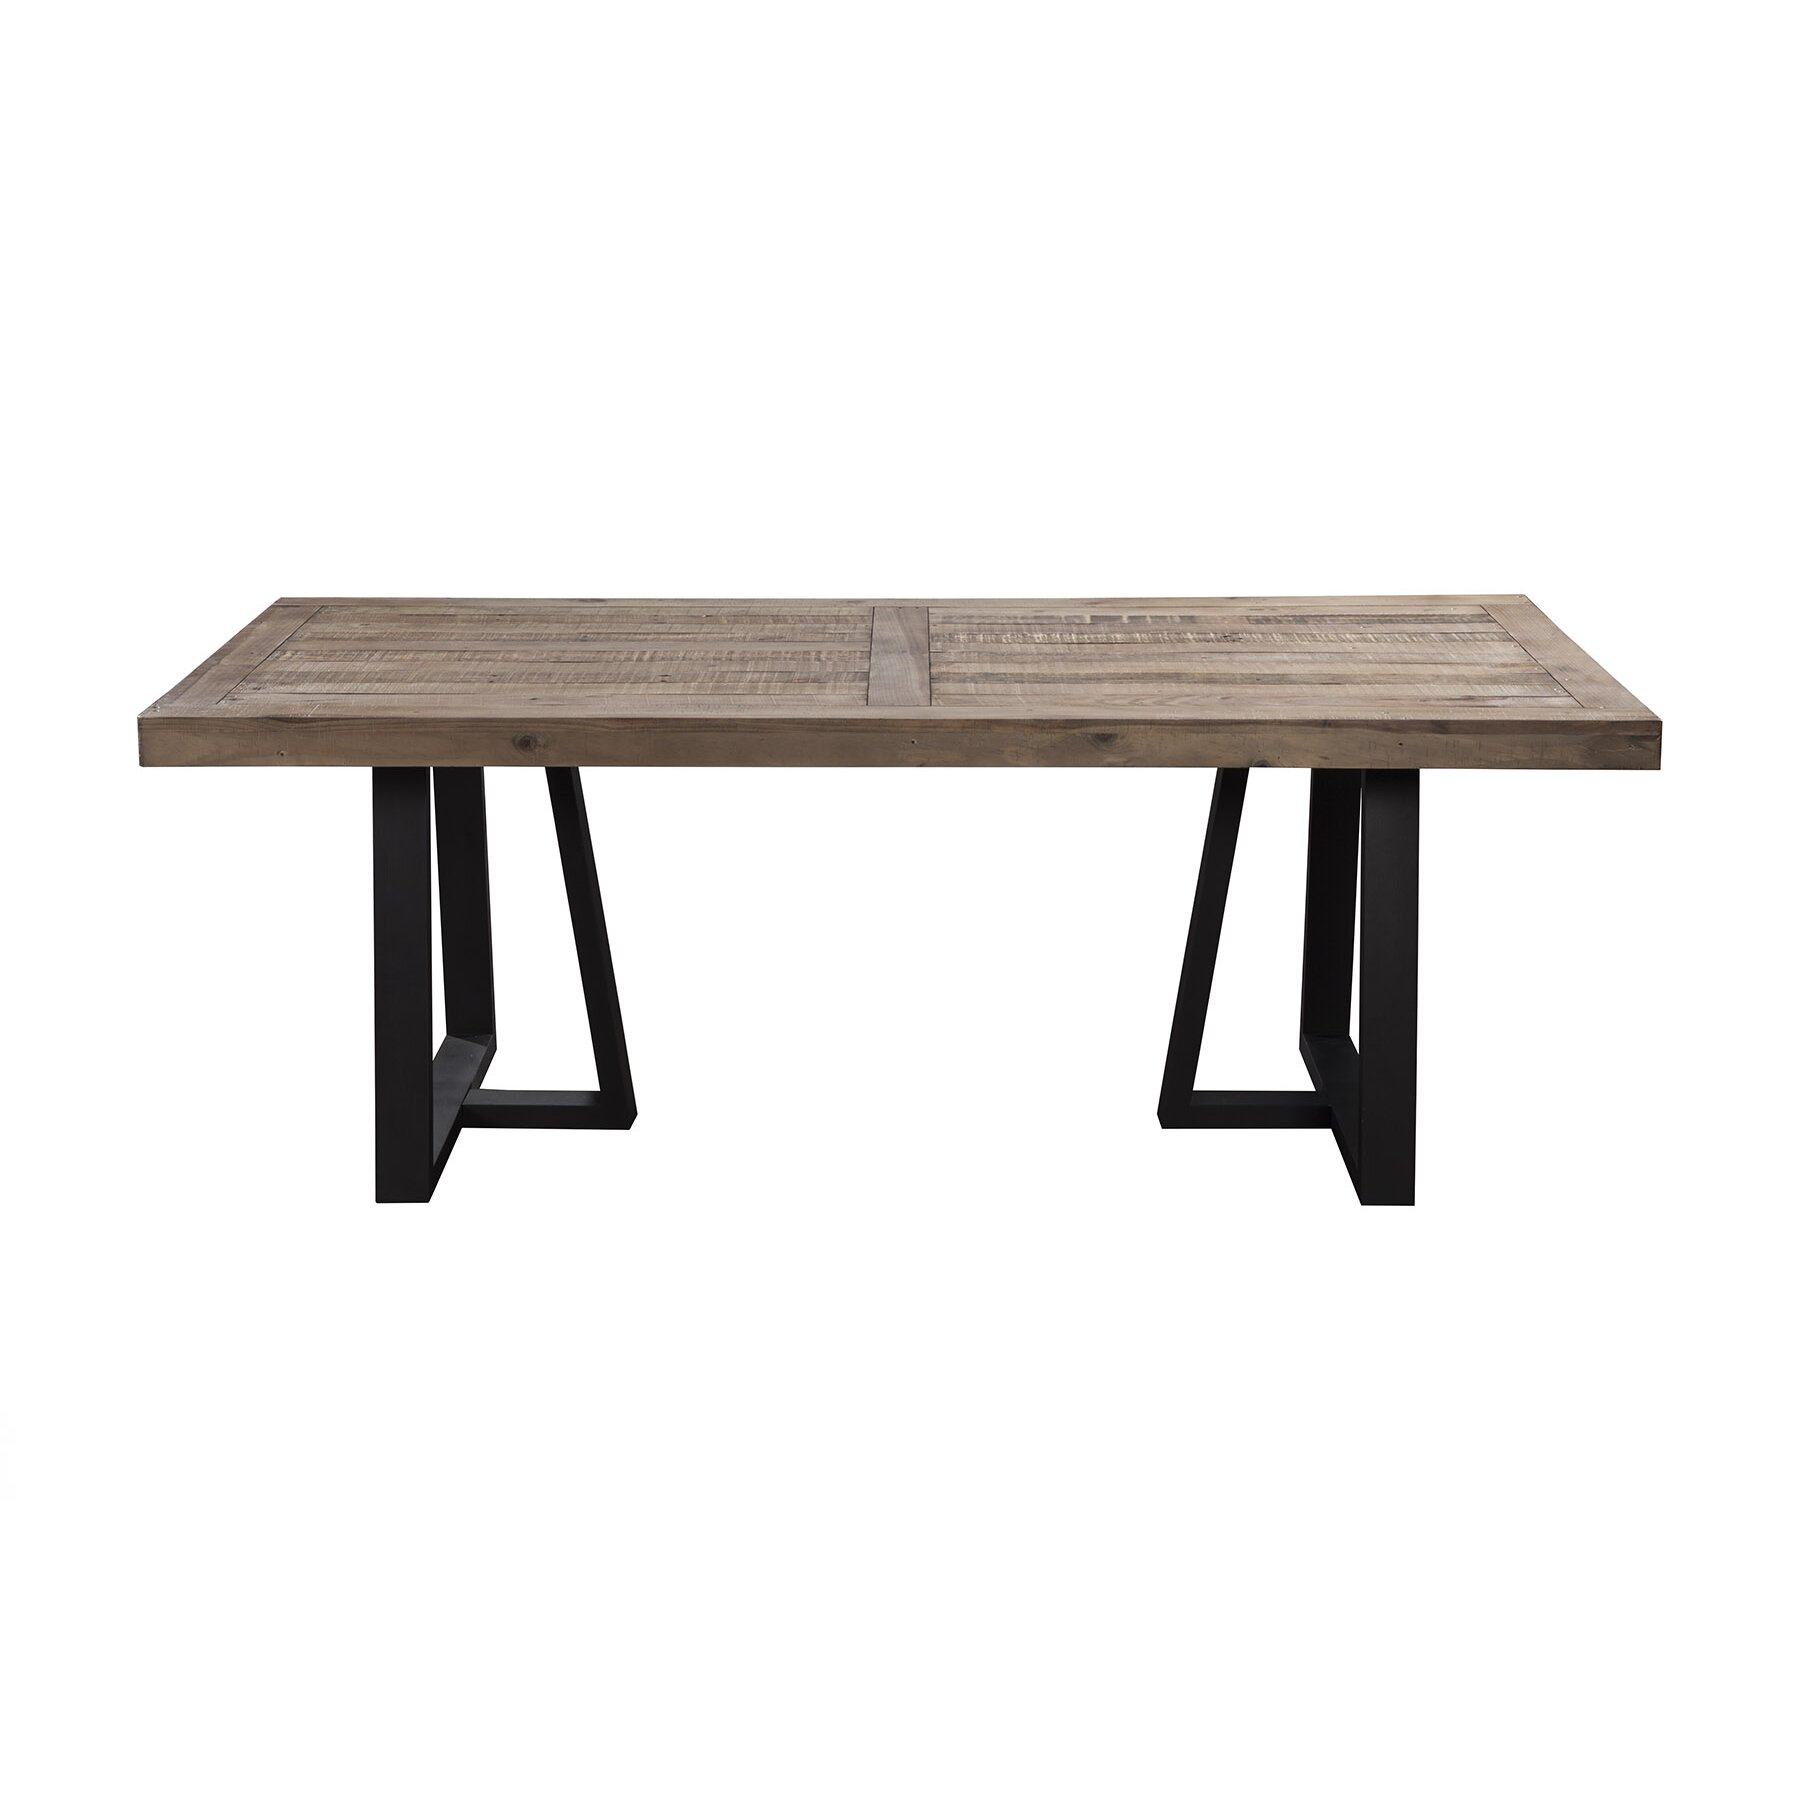 Gracie oaks t j dining table reviews for Dining table tj hughes